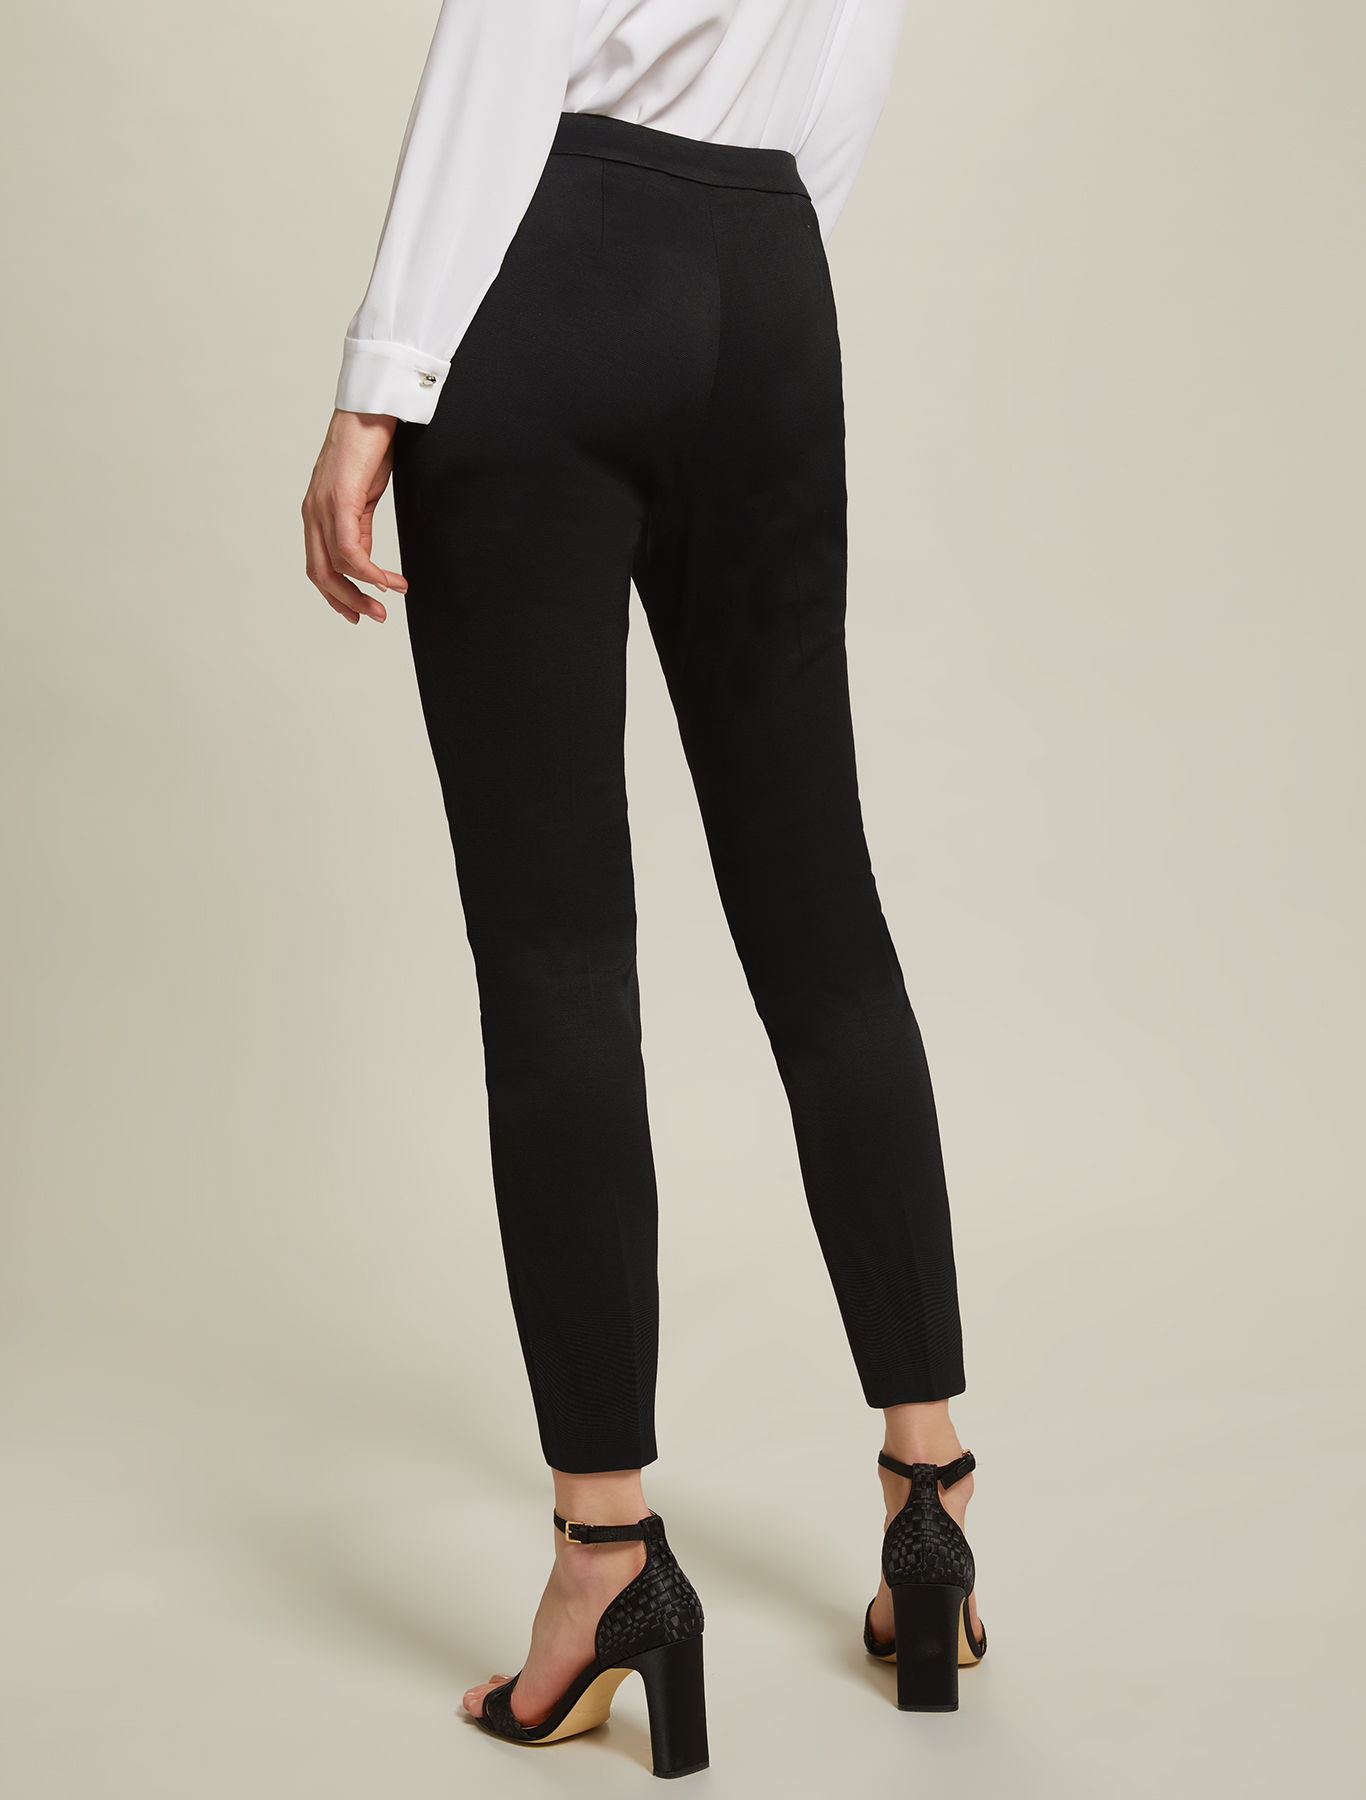 Slim faille trousers - black - pennyblack